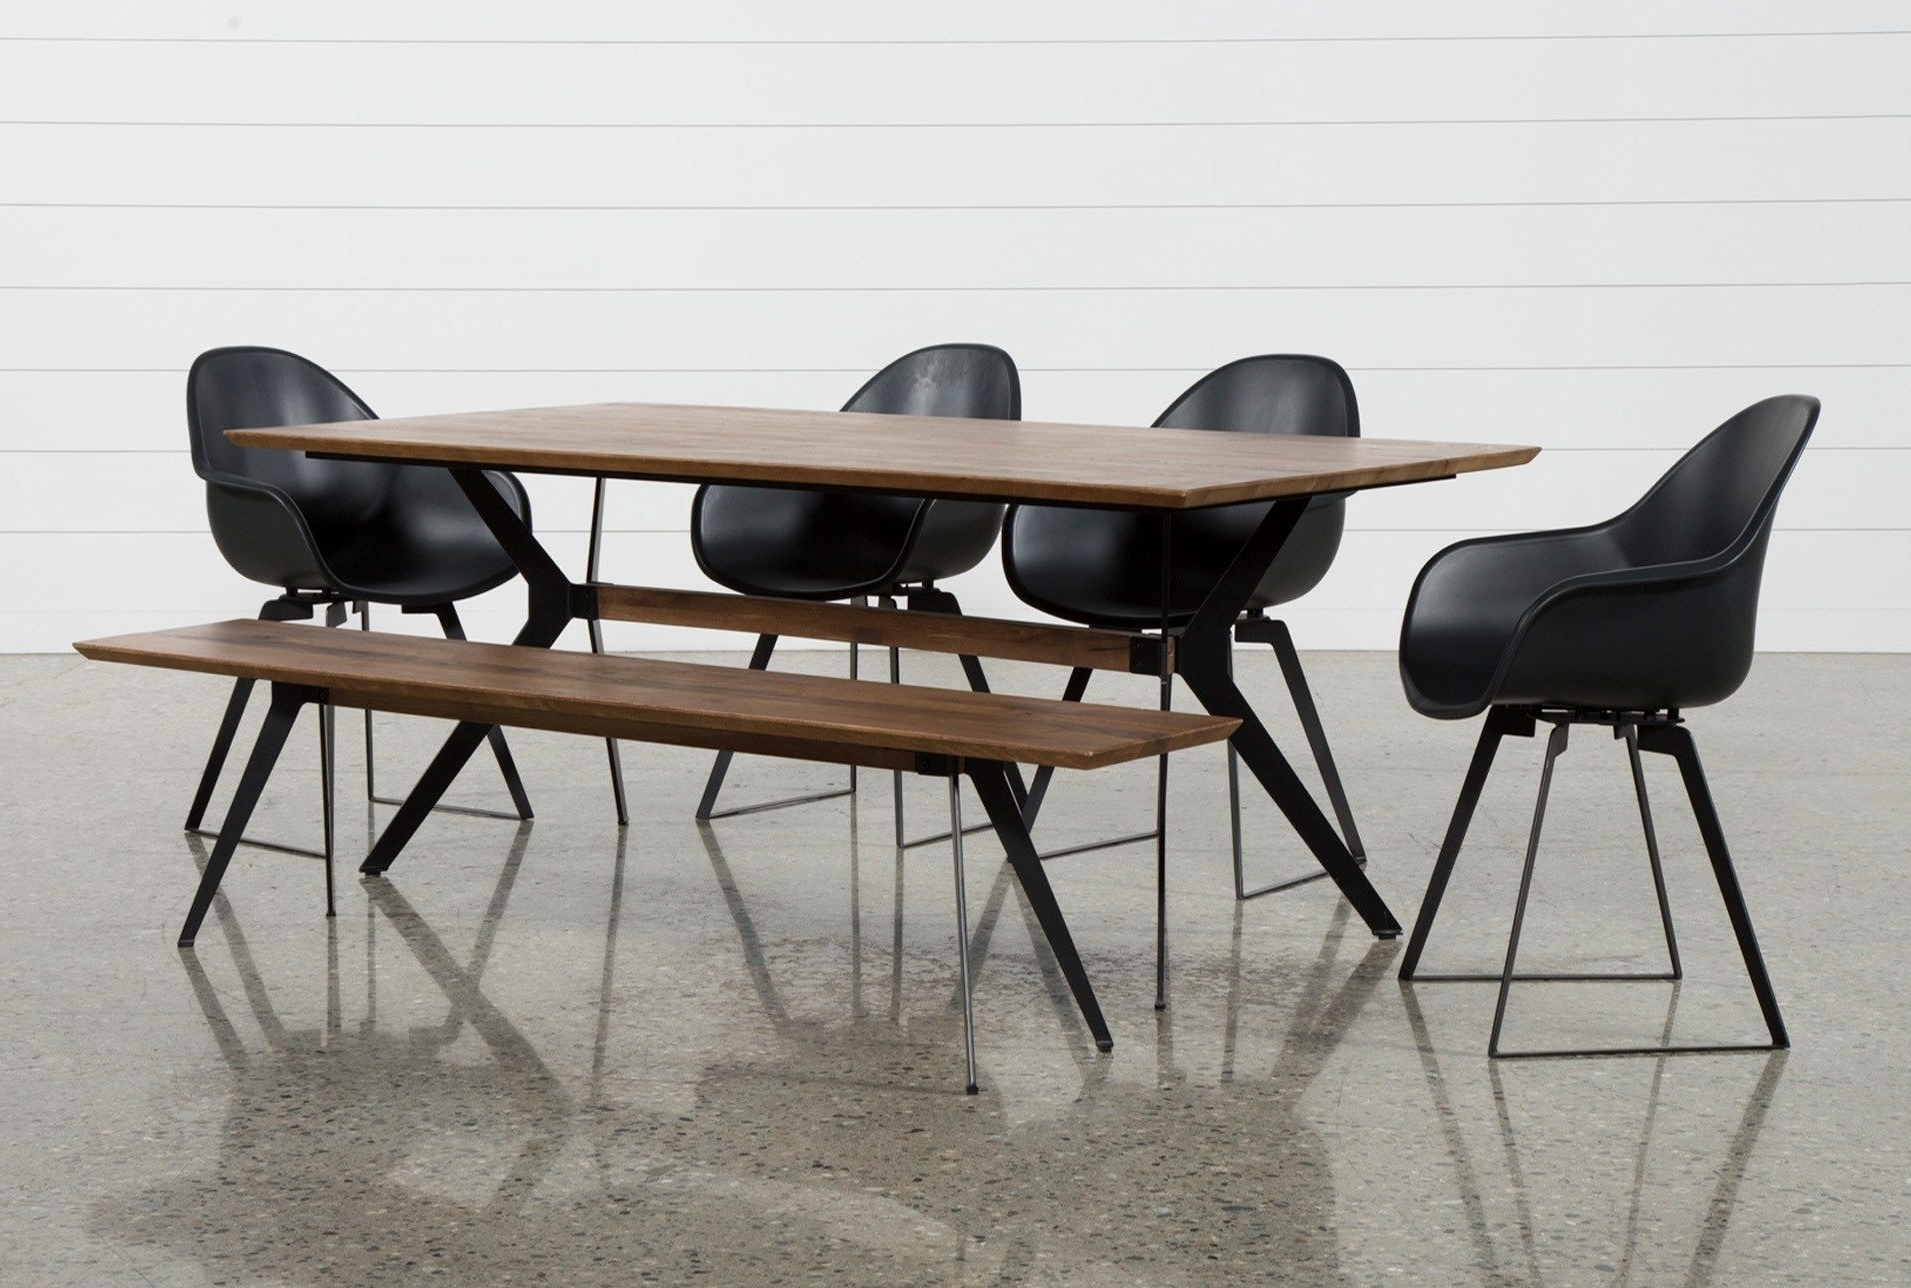 Together, Our Weaver Dining Table, Bench And Alvin Arm Chair Bring Within Latest Weaver Ii Dining Tables (View 13 of 25)